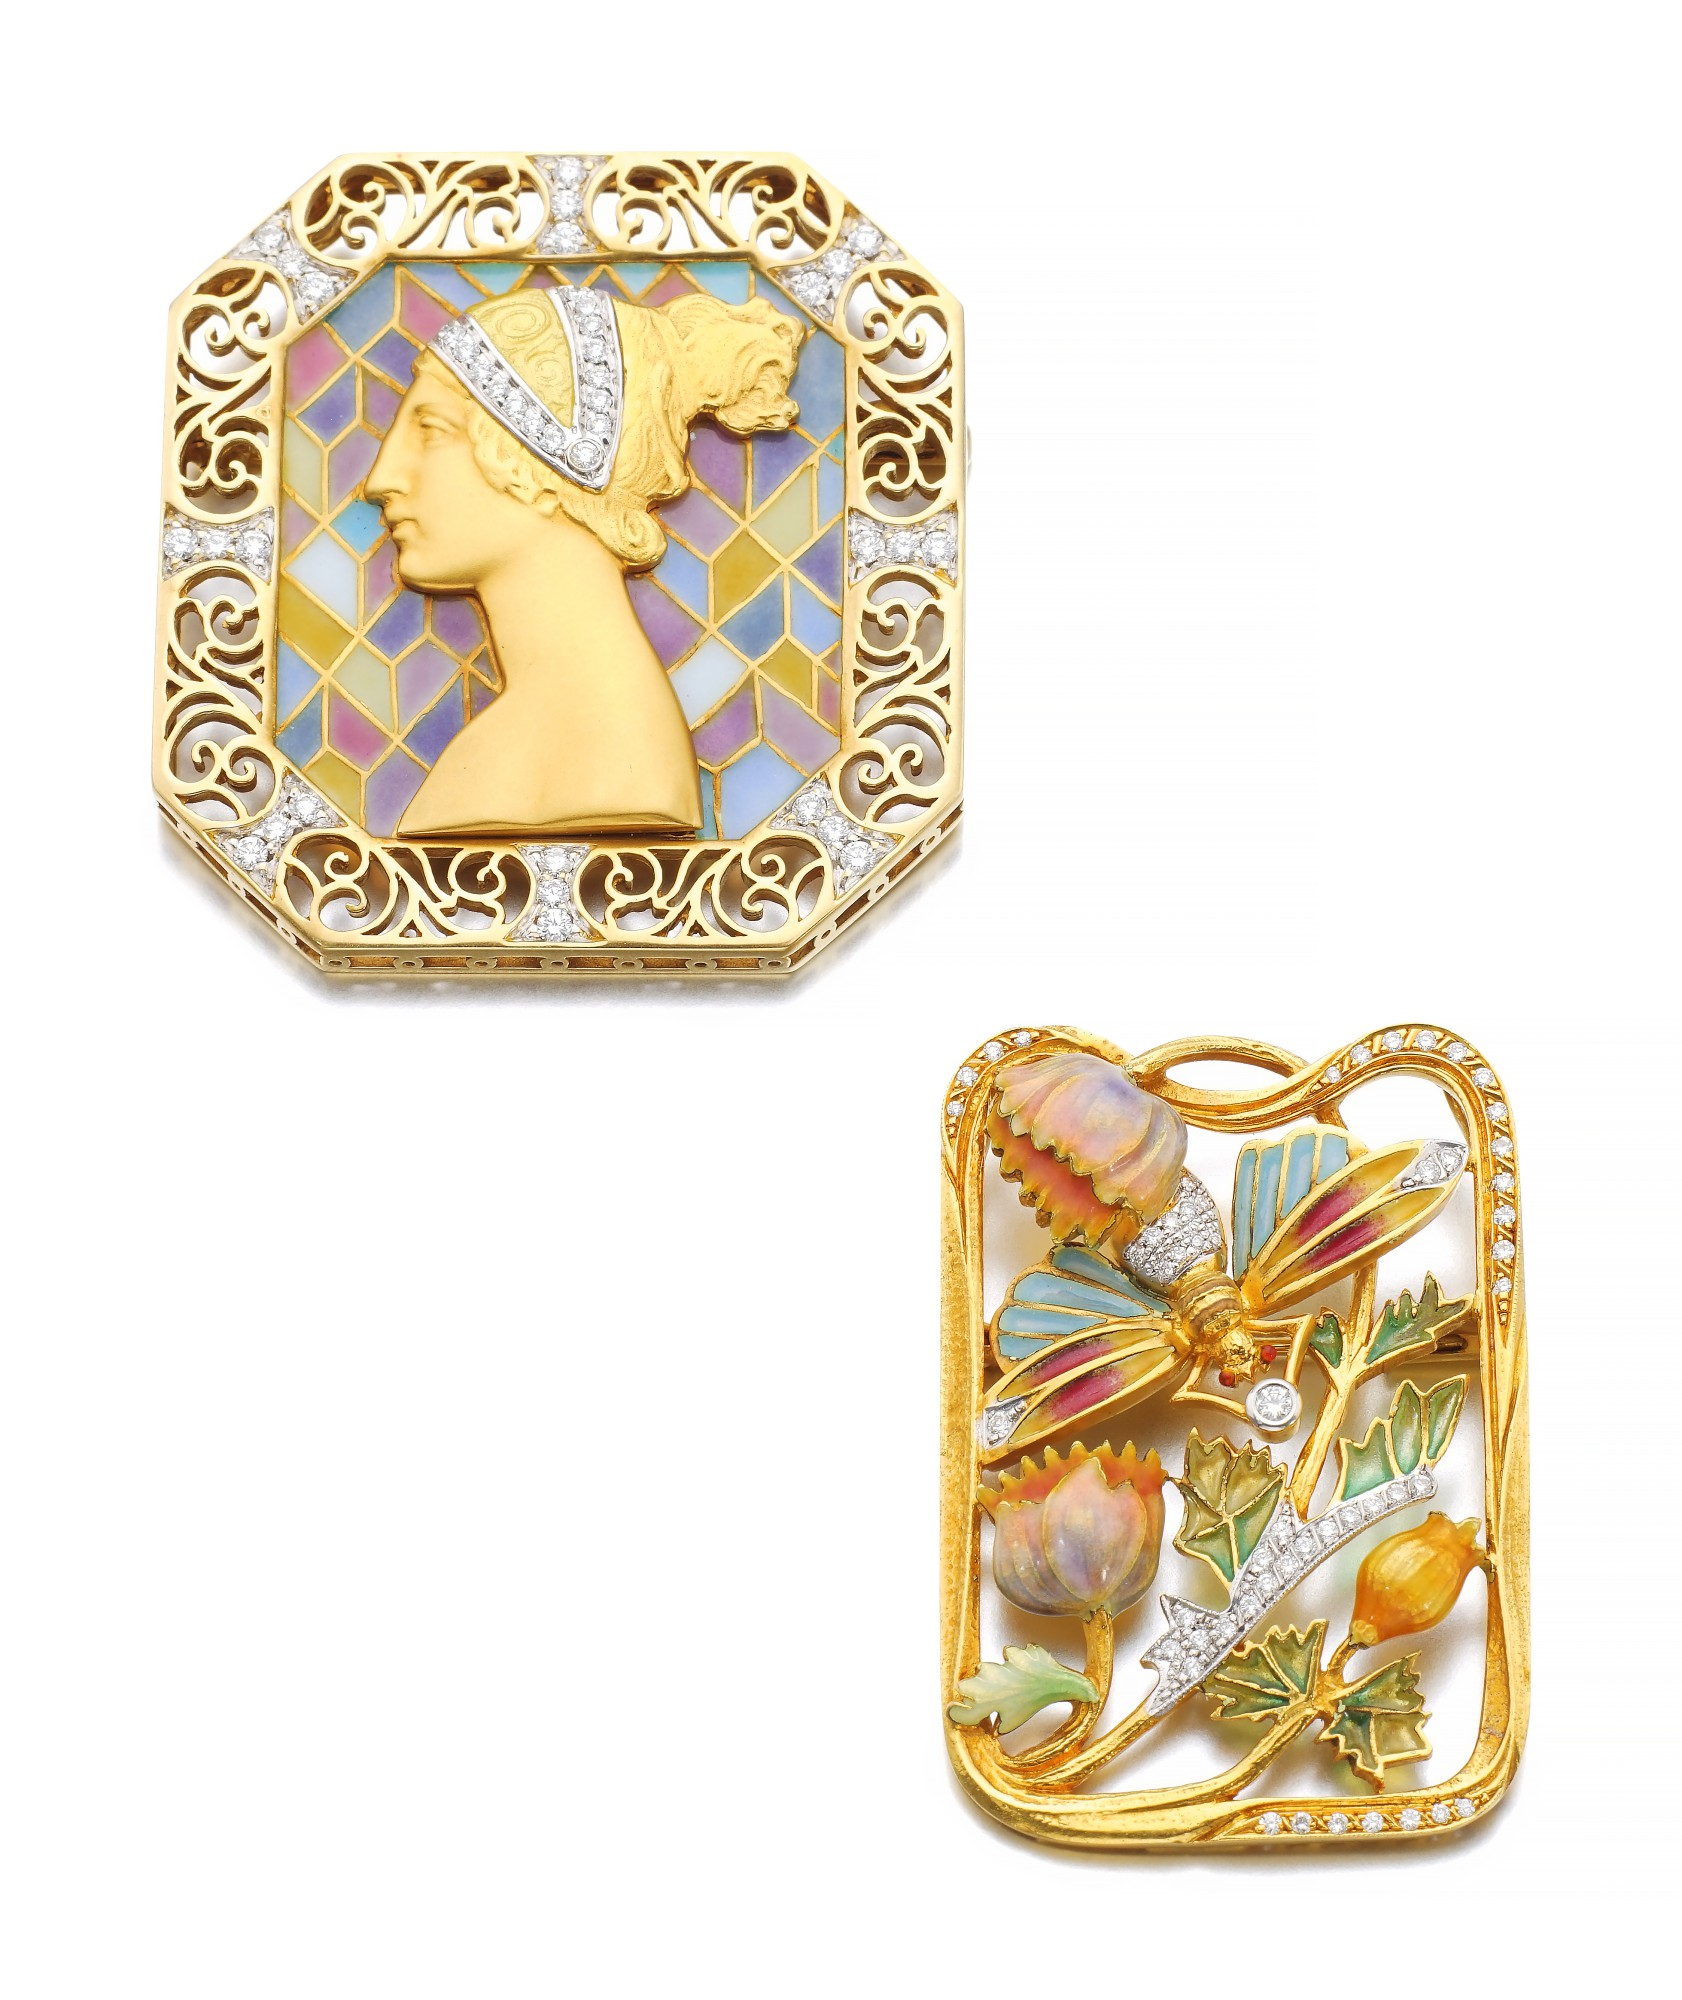 TWO ENAMEL AND DIAMOND BROOCHES | MASRIERA